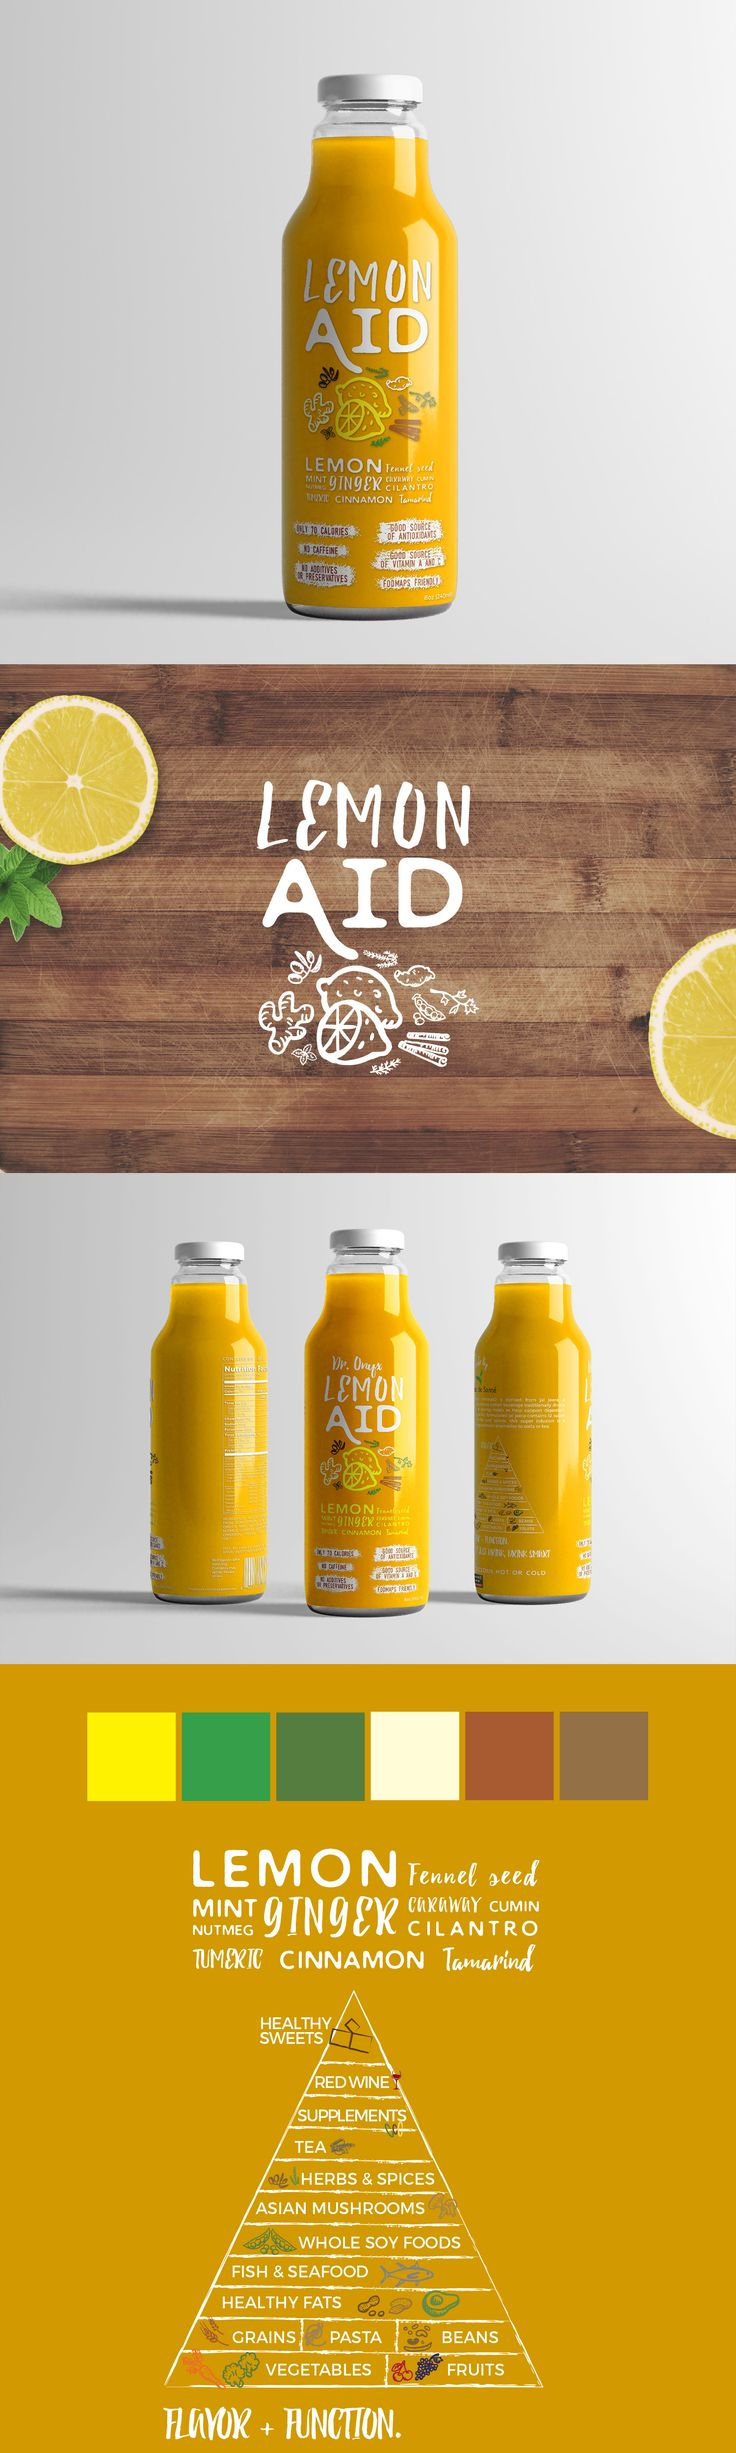 LemonAID is a healthy drink that needed an upscale modern look incorporating a clear label. Although this label design wasn't chosen as the final to use, we incorporated a hand-made packaging design with handwriting and hand-drawn fruits & vegetables. branding lemon yellow lemonade juice glass bottle clear label design brand logo